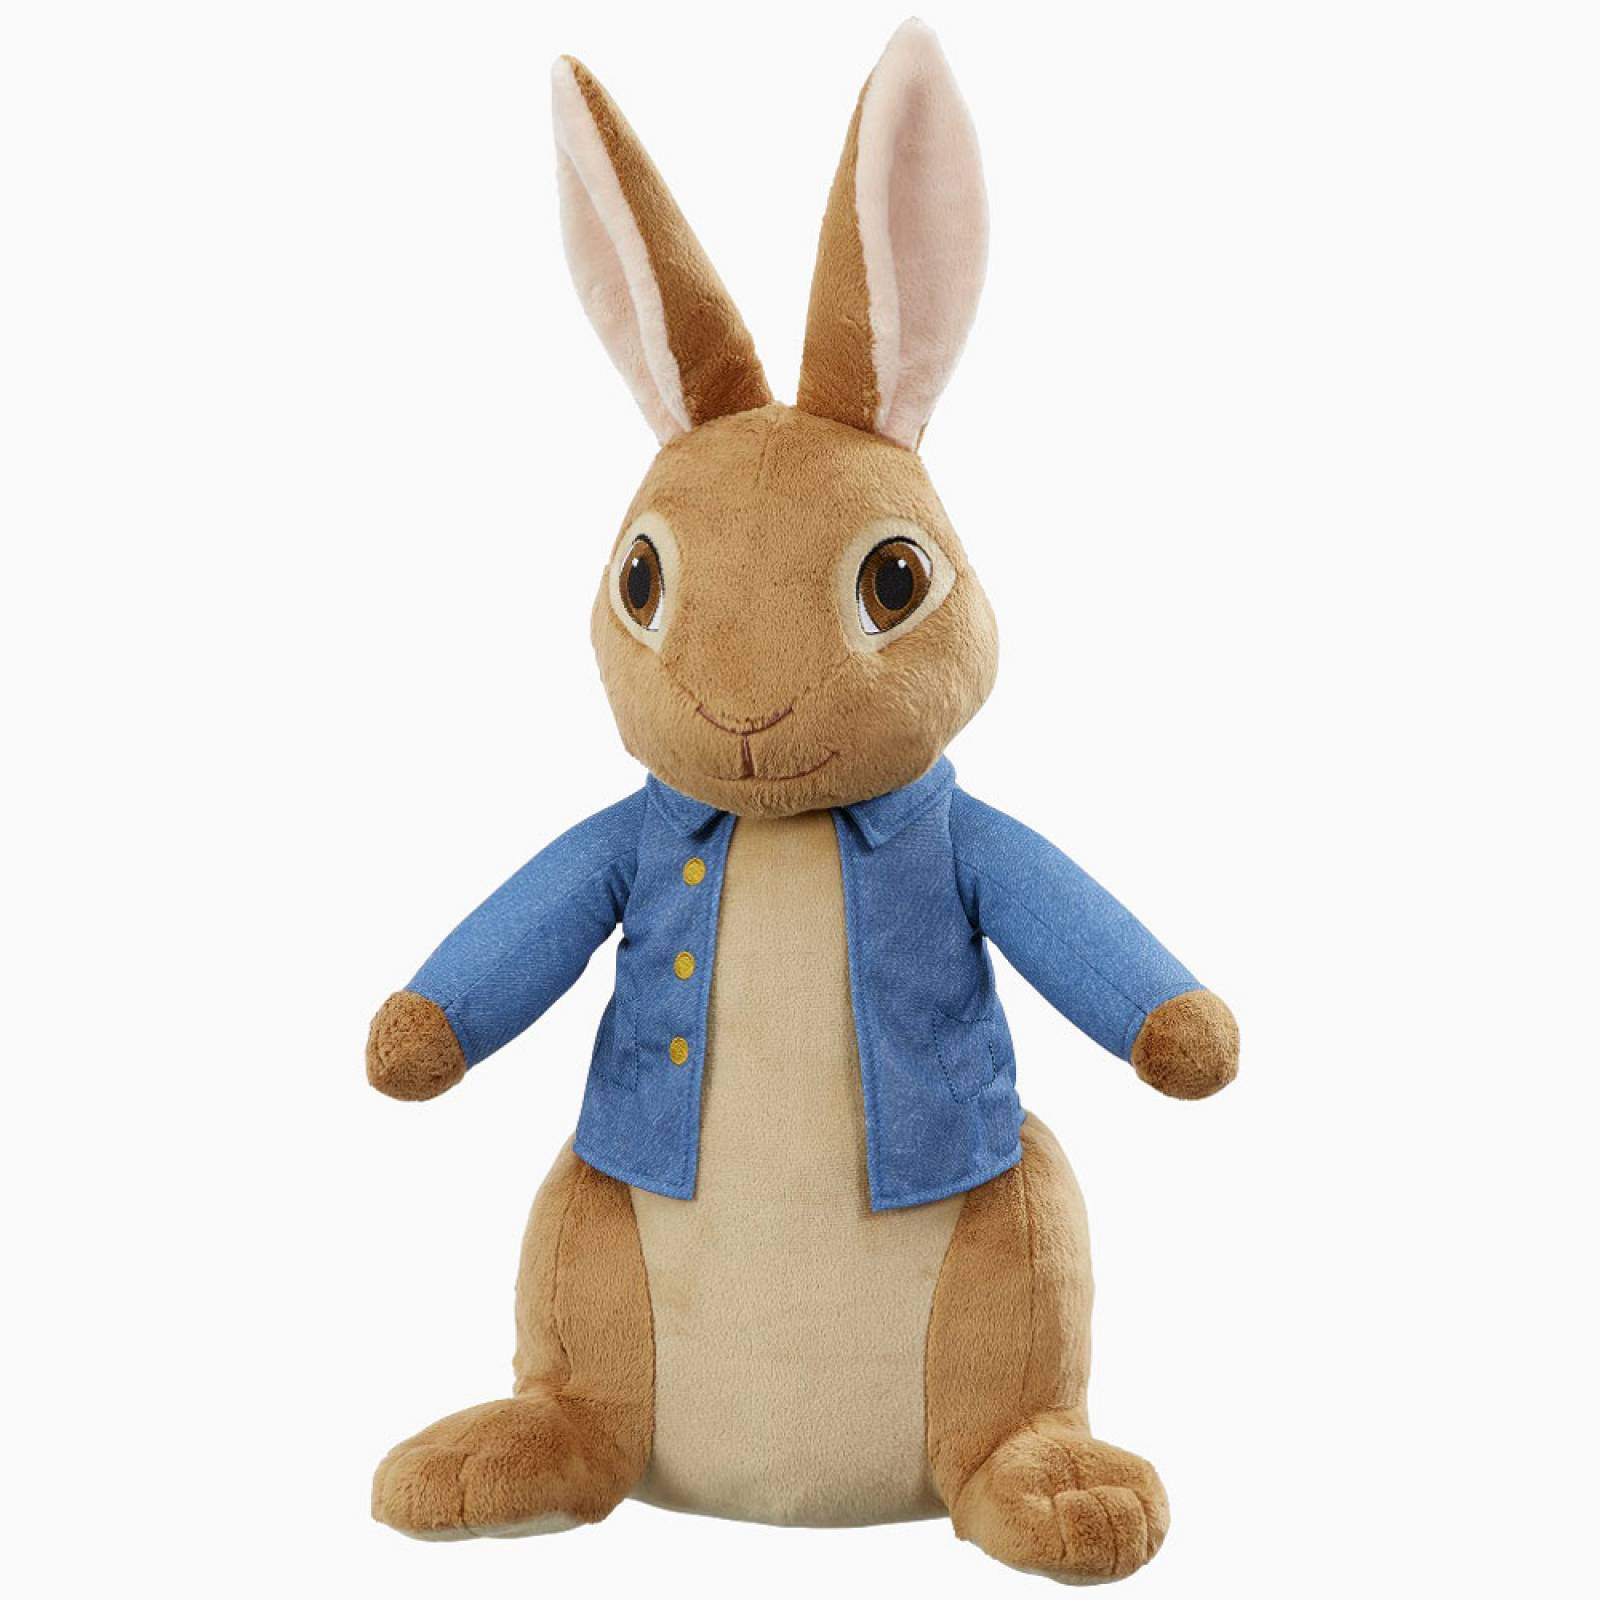 My First Giant Peter Rabbit Soft Toy 0+